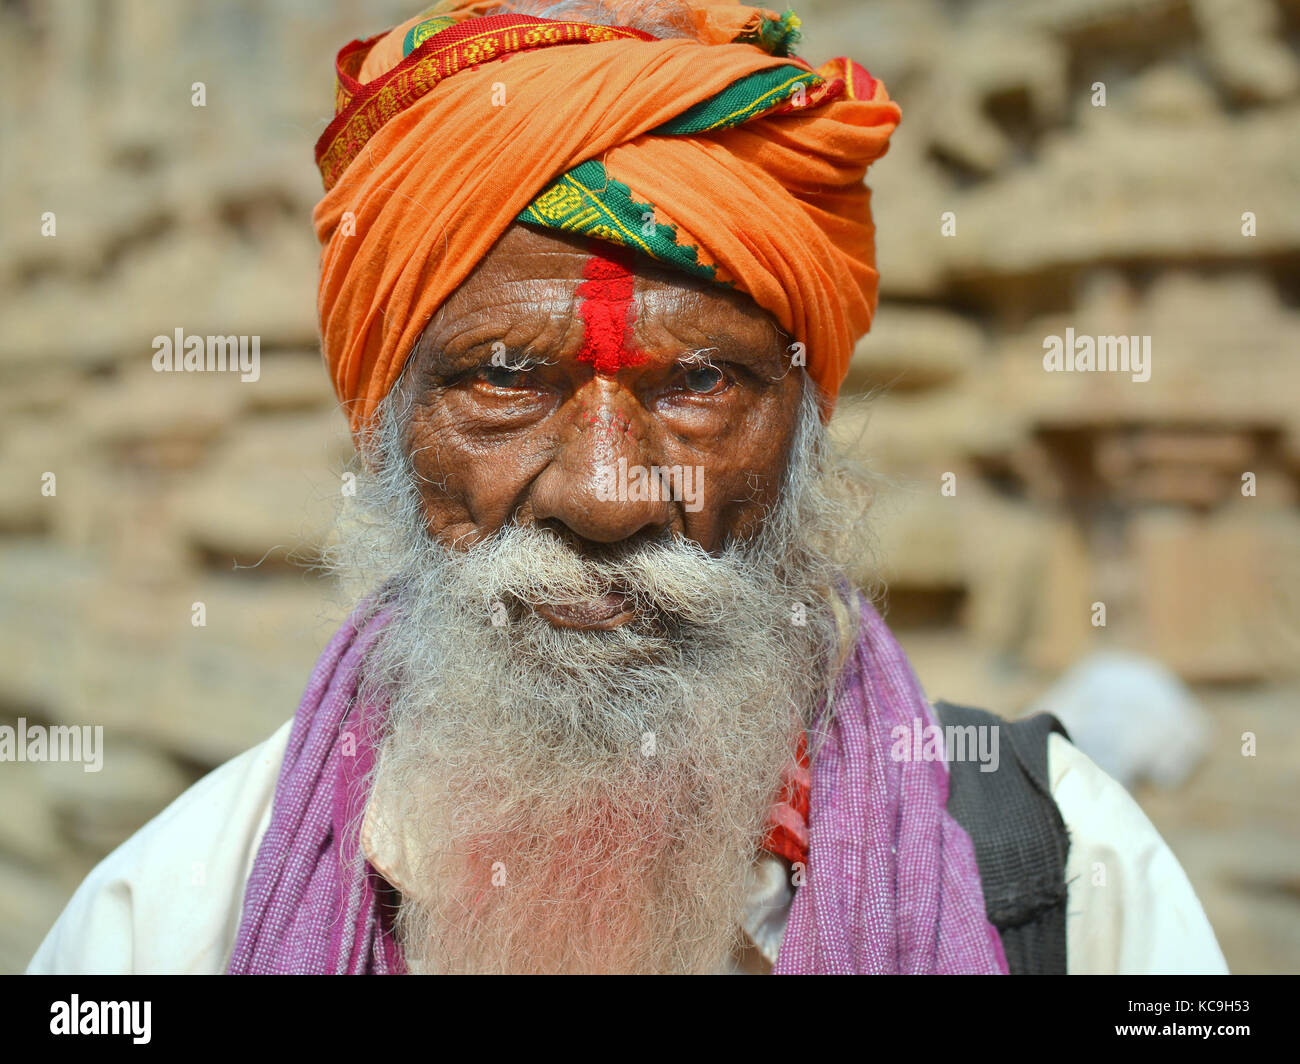 Very old Shaivite sadhu with orange turban and red tilaka mark on his forehead Stock Photo